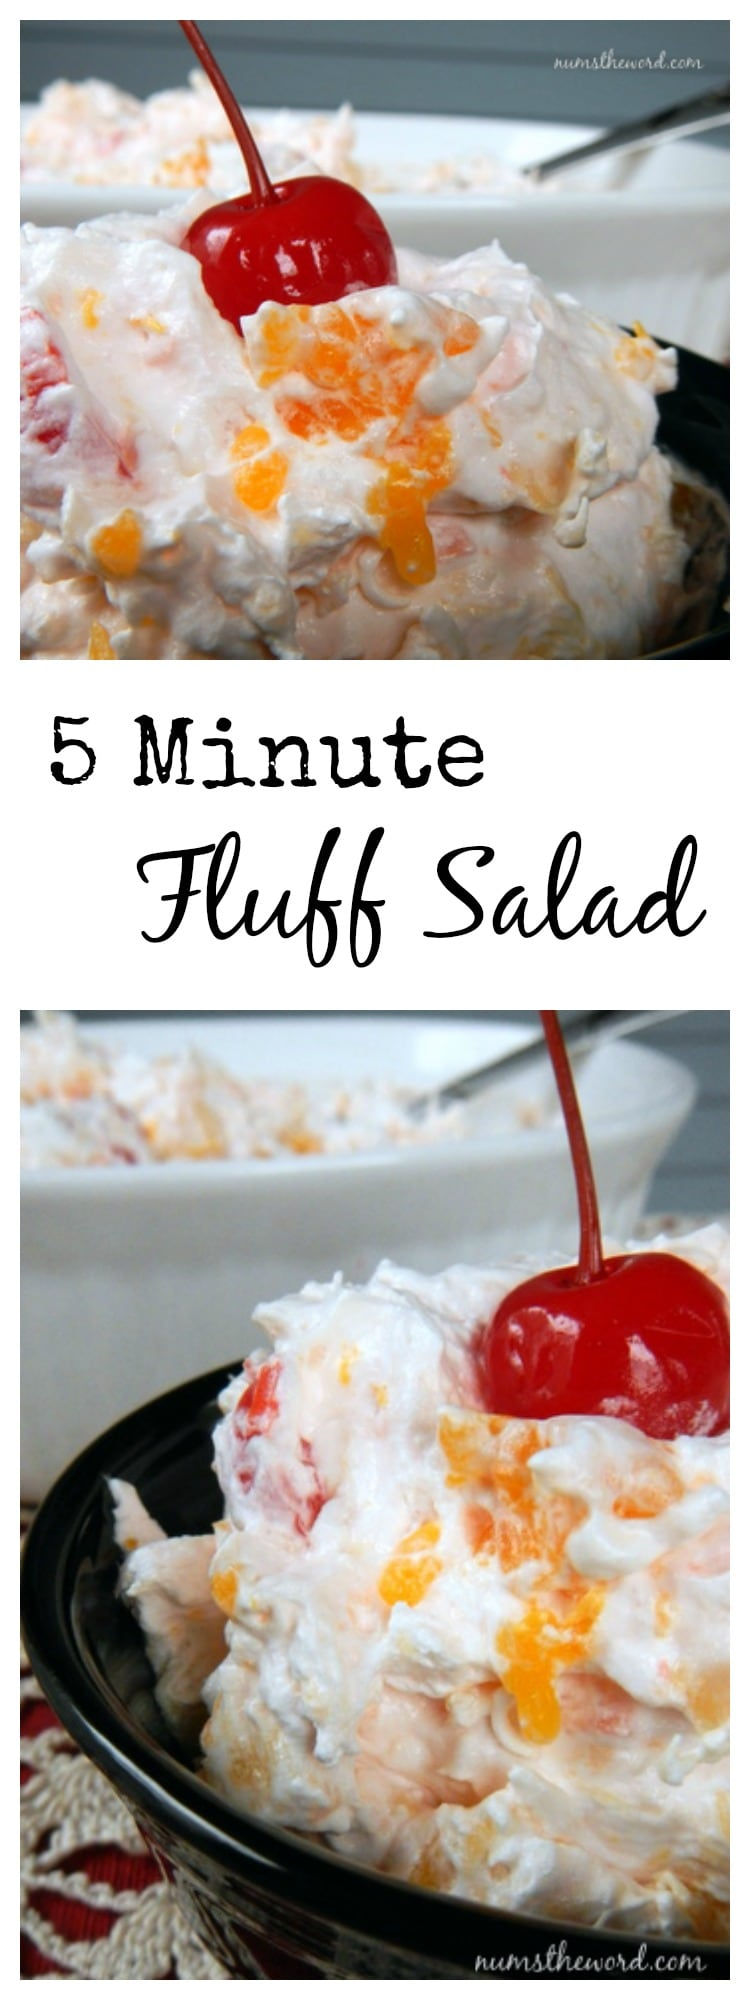 5 minute fluff salad long